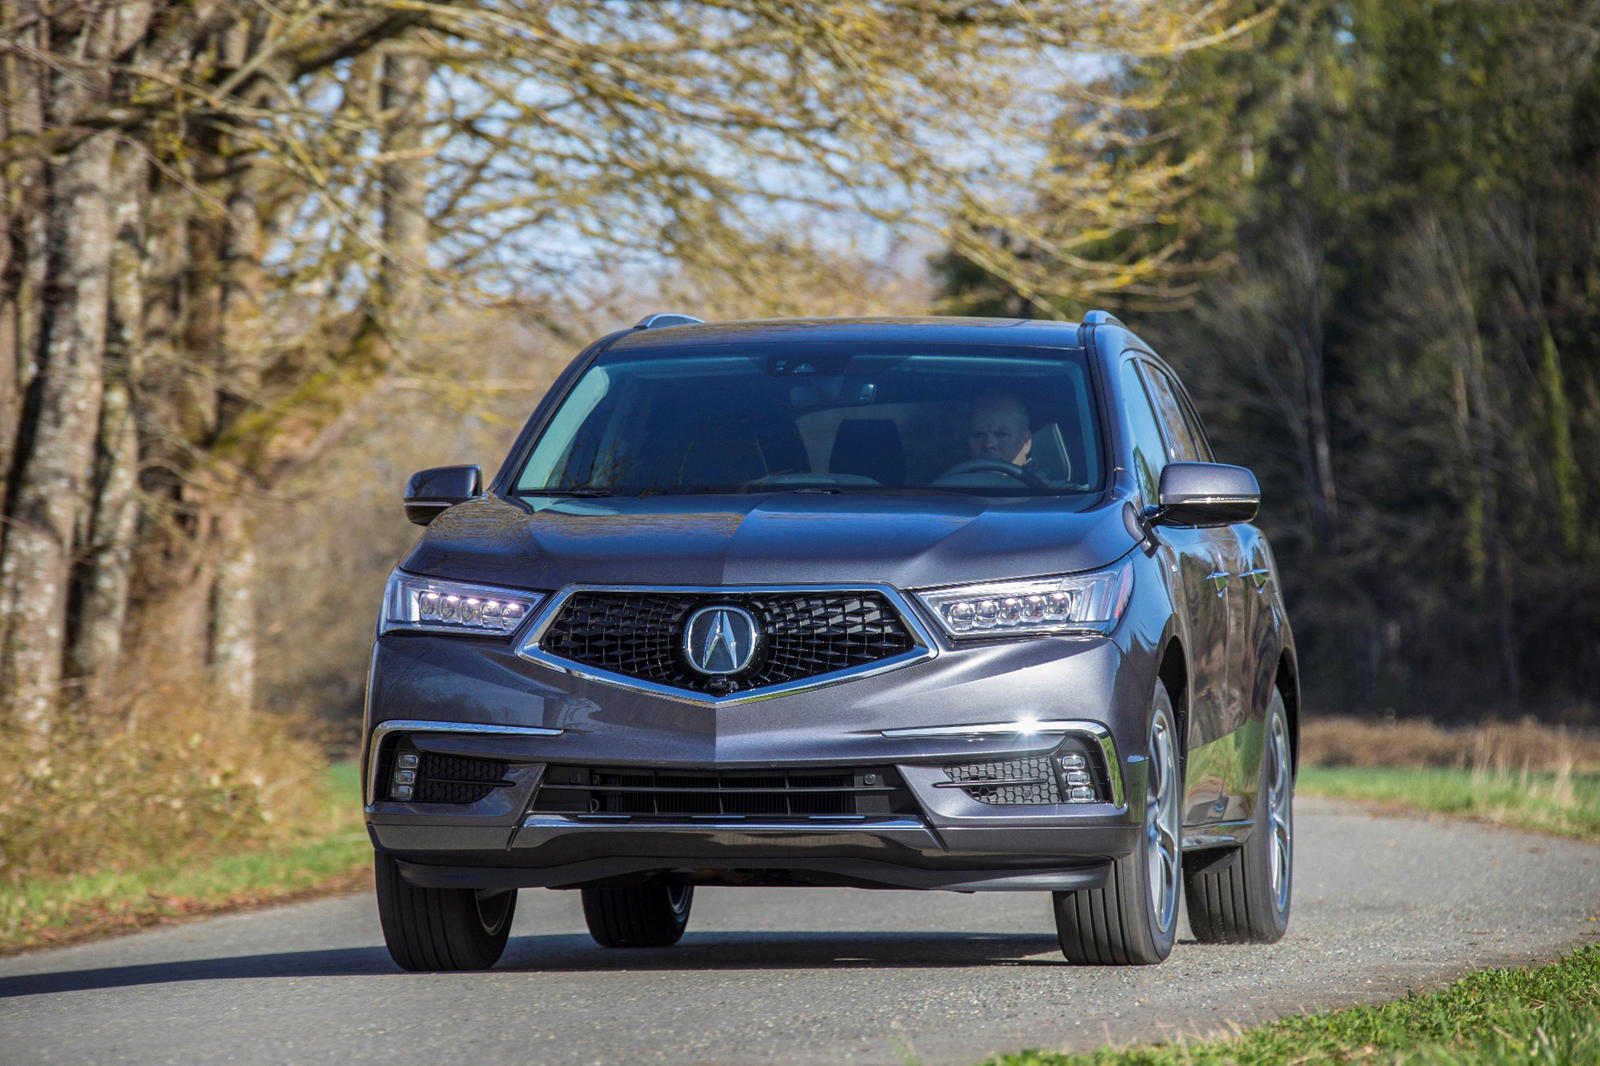 2020 ACURA MDX HYBRID FRONT VIEW